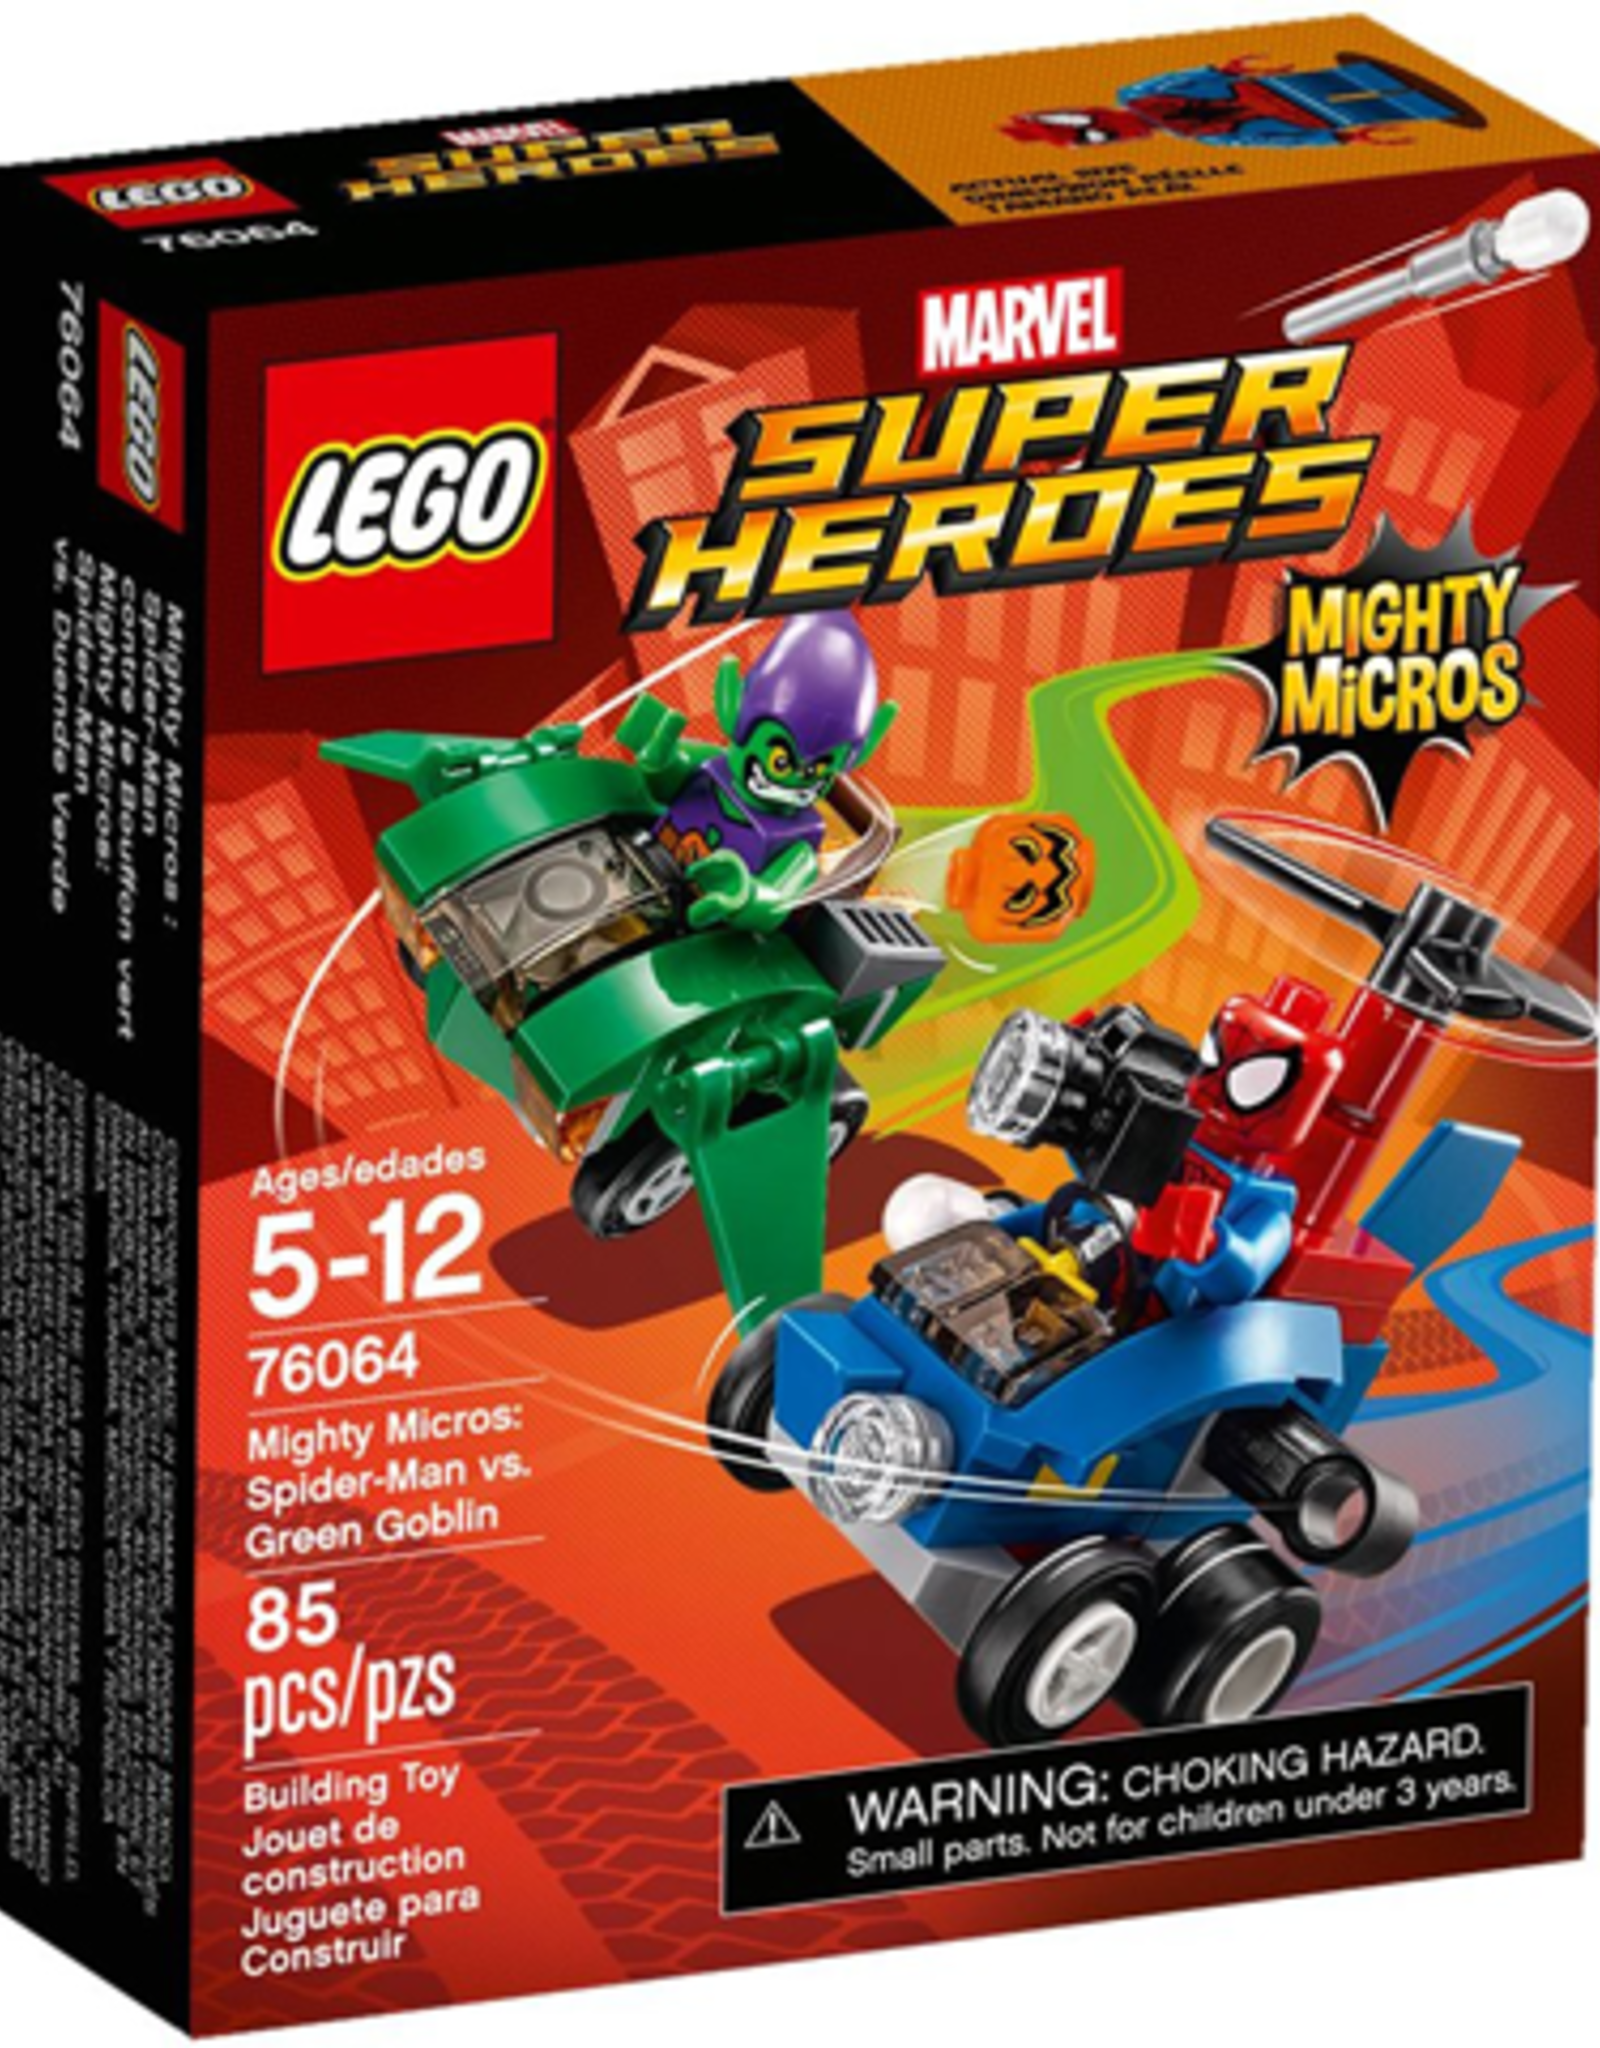 LEGO LEGO 76064 Spider-Man vs. Green Goblin SUPER HEROES